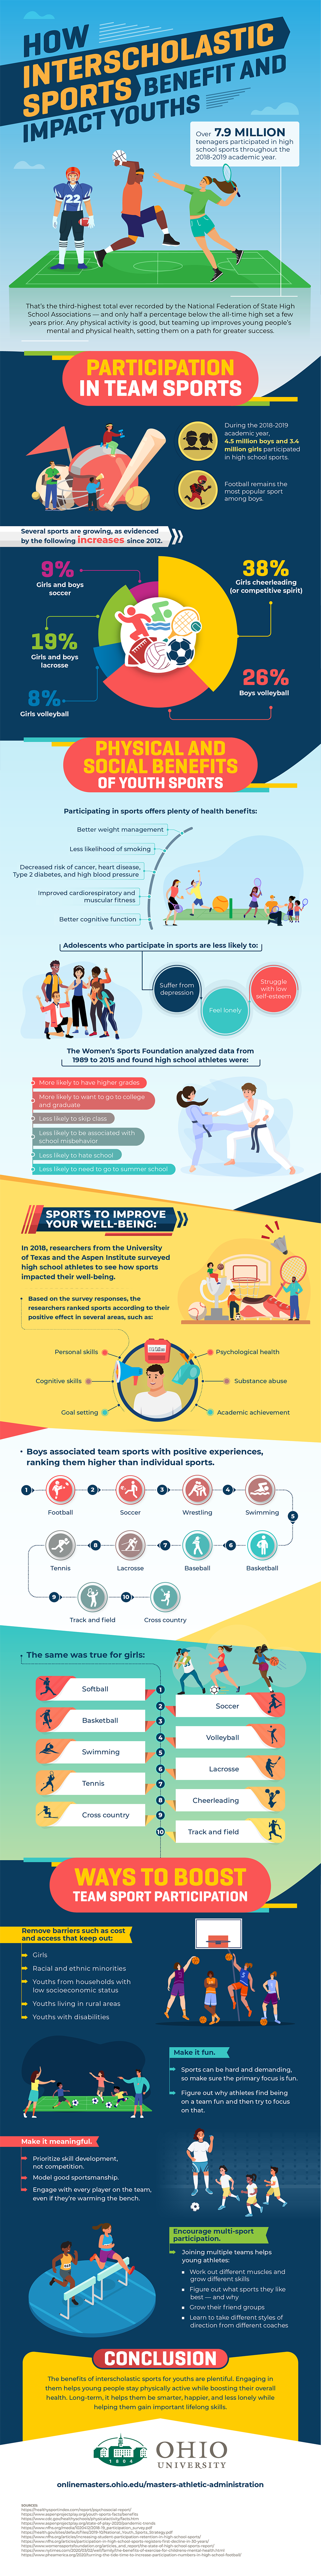 How team sports benefit youths and how to remove barriers so more young people start to play.